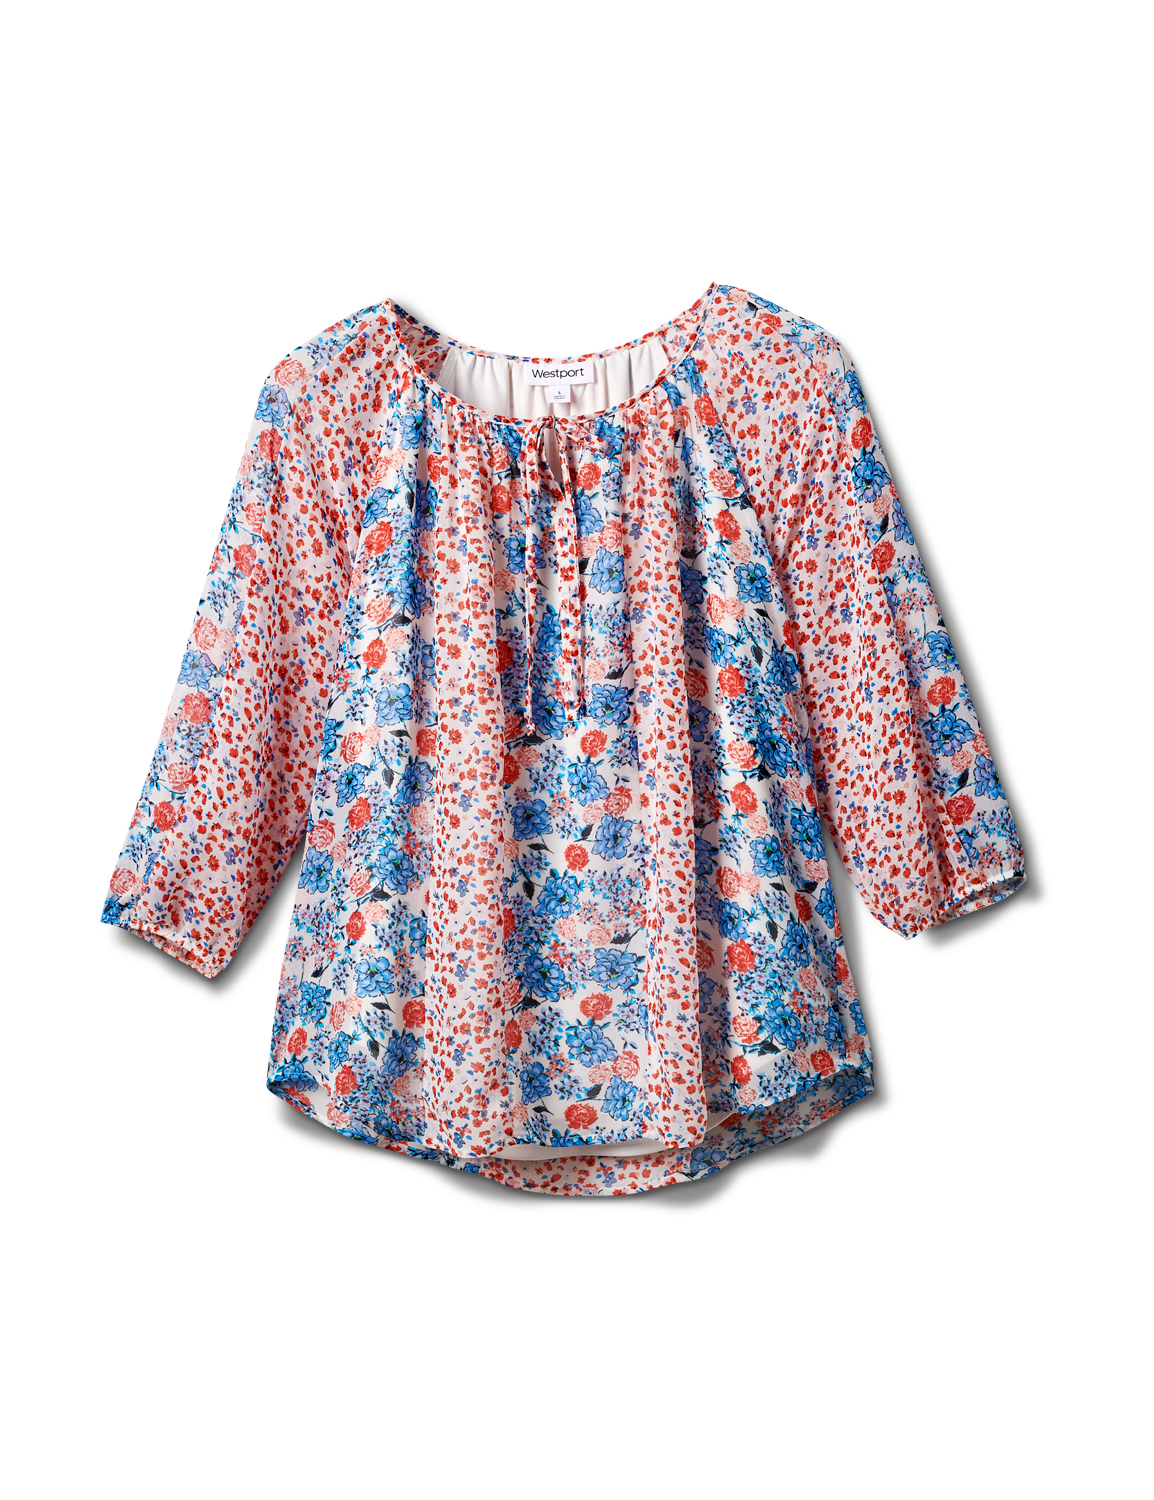 Westport Small Floral Twin Print Blouse -Red/Blue - Front